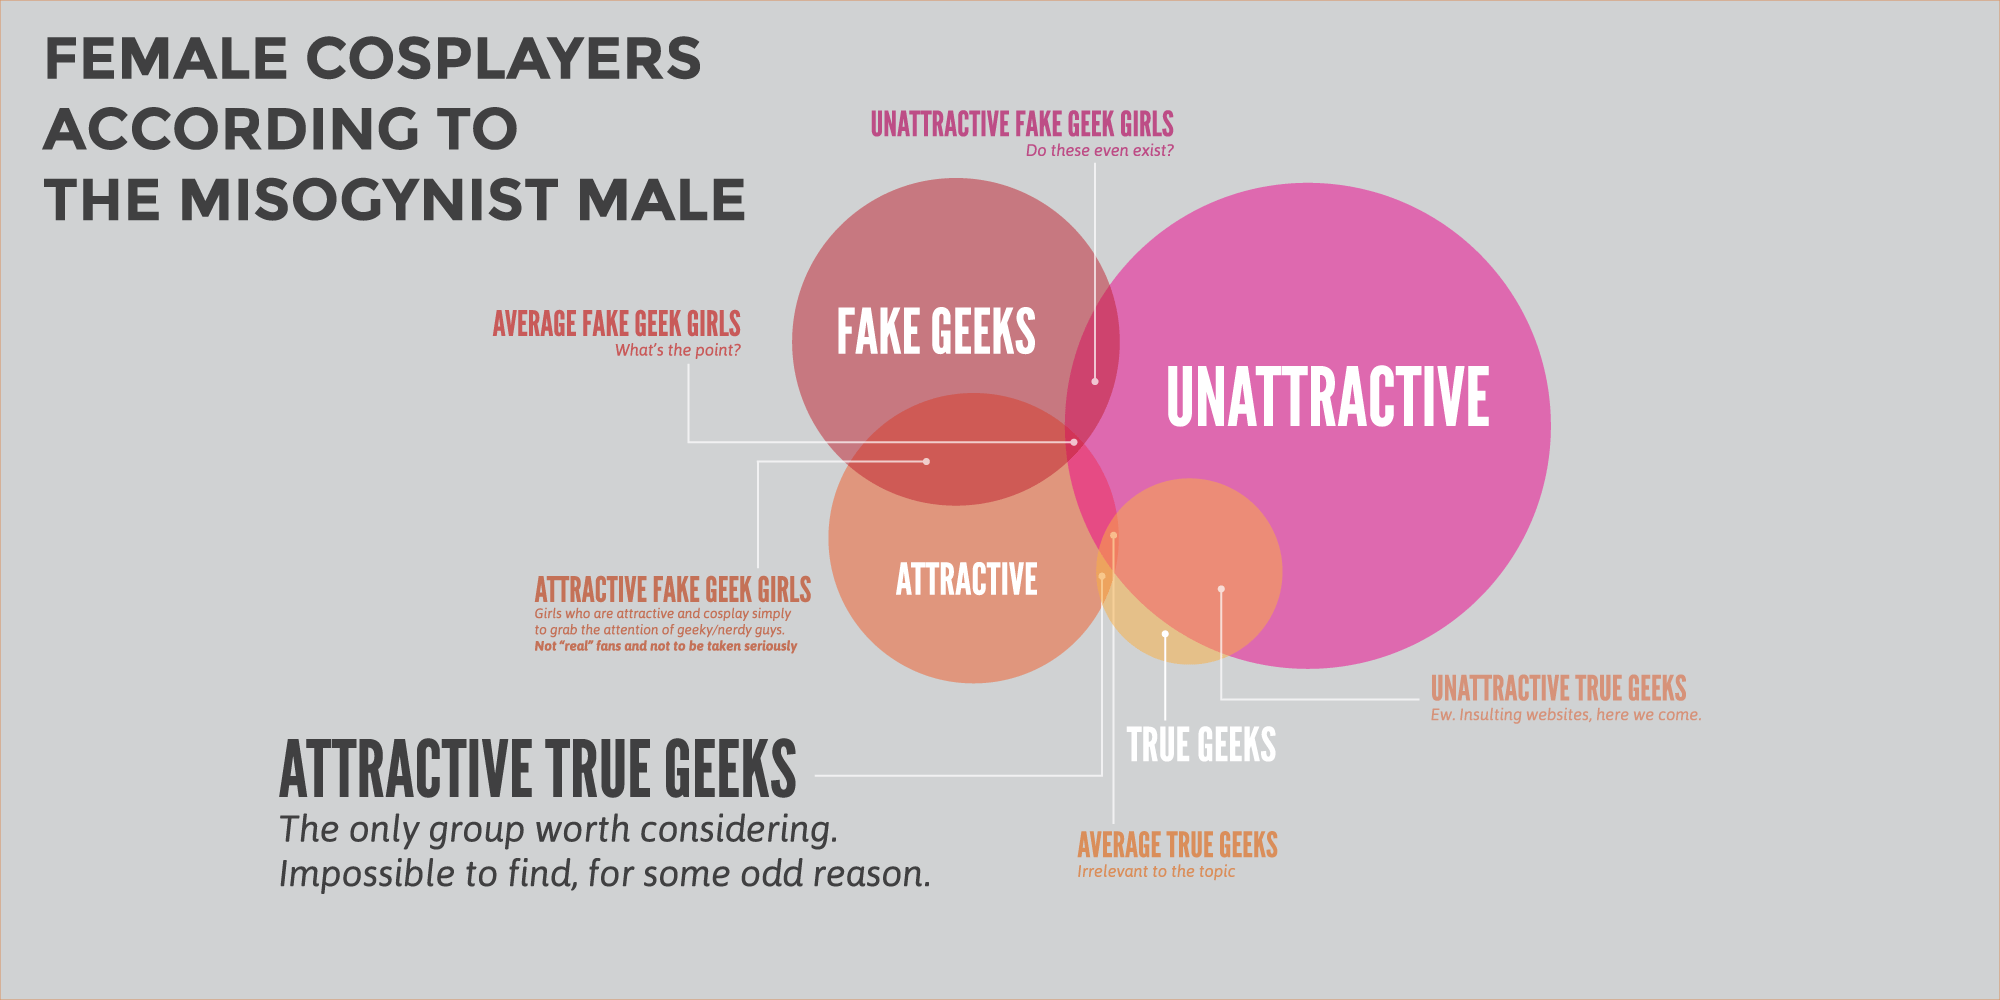 Infographic showing how the misogynist male views female cosplayers.